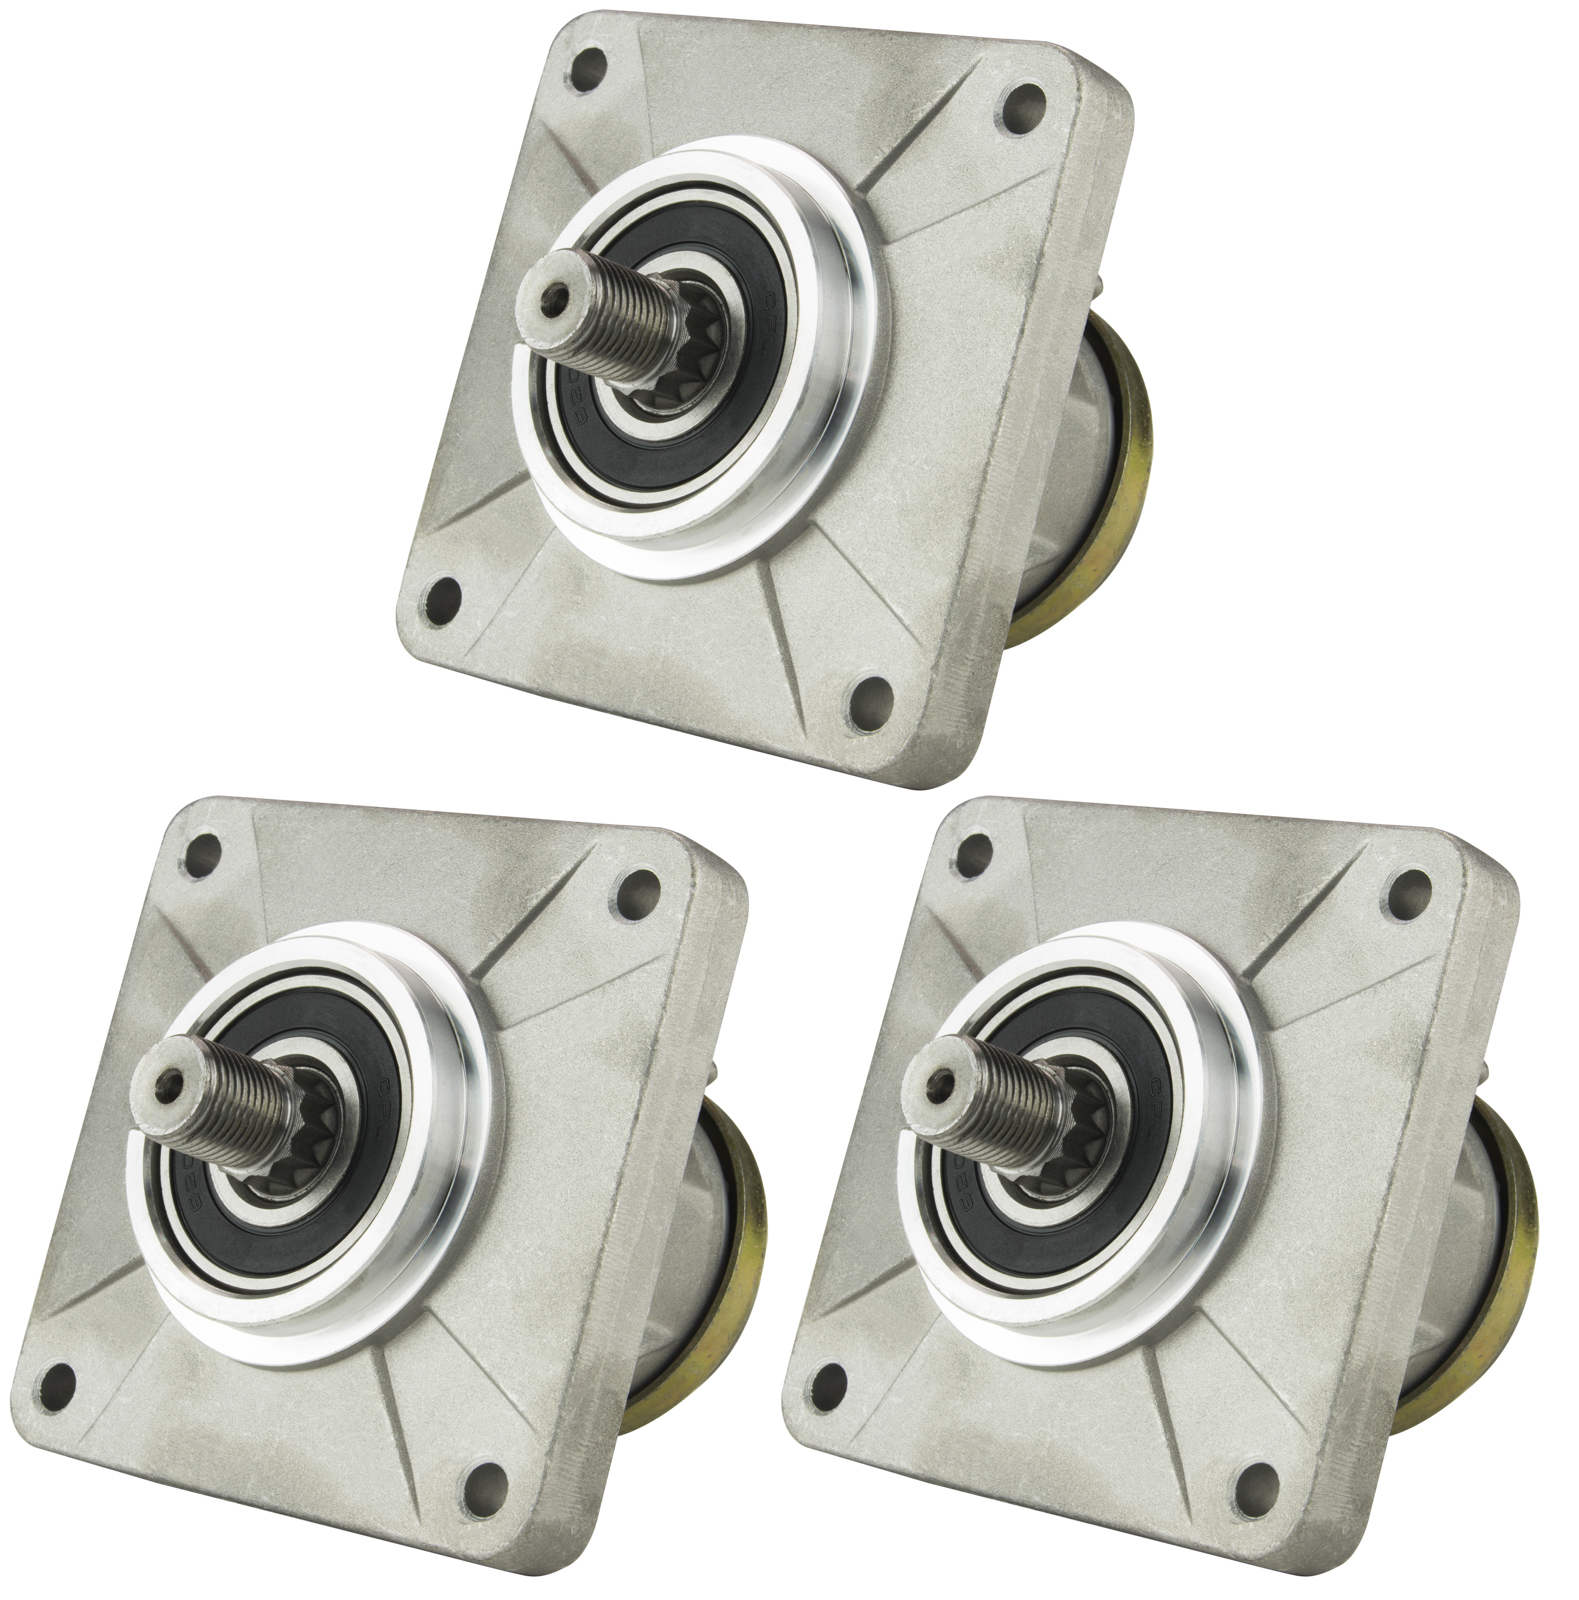 Three (3) Pack Erie Tools Lawn Mower Deck Spindle Assembly For MTD 918-0116, 618-0111, 6187-0116, 618-0116A, 918-0116,... by Erie Tools